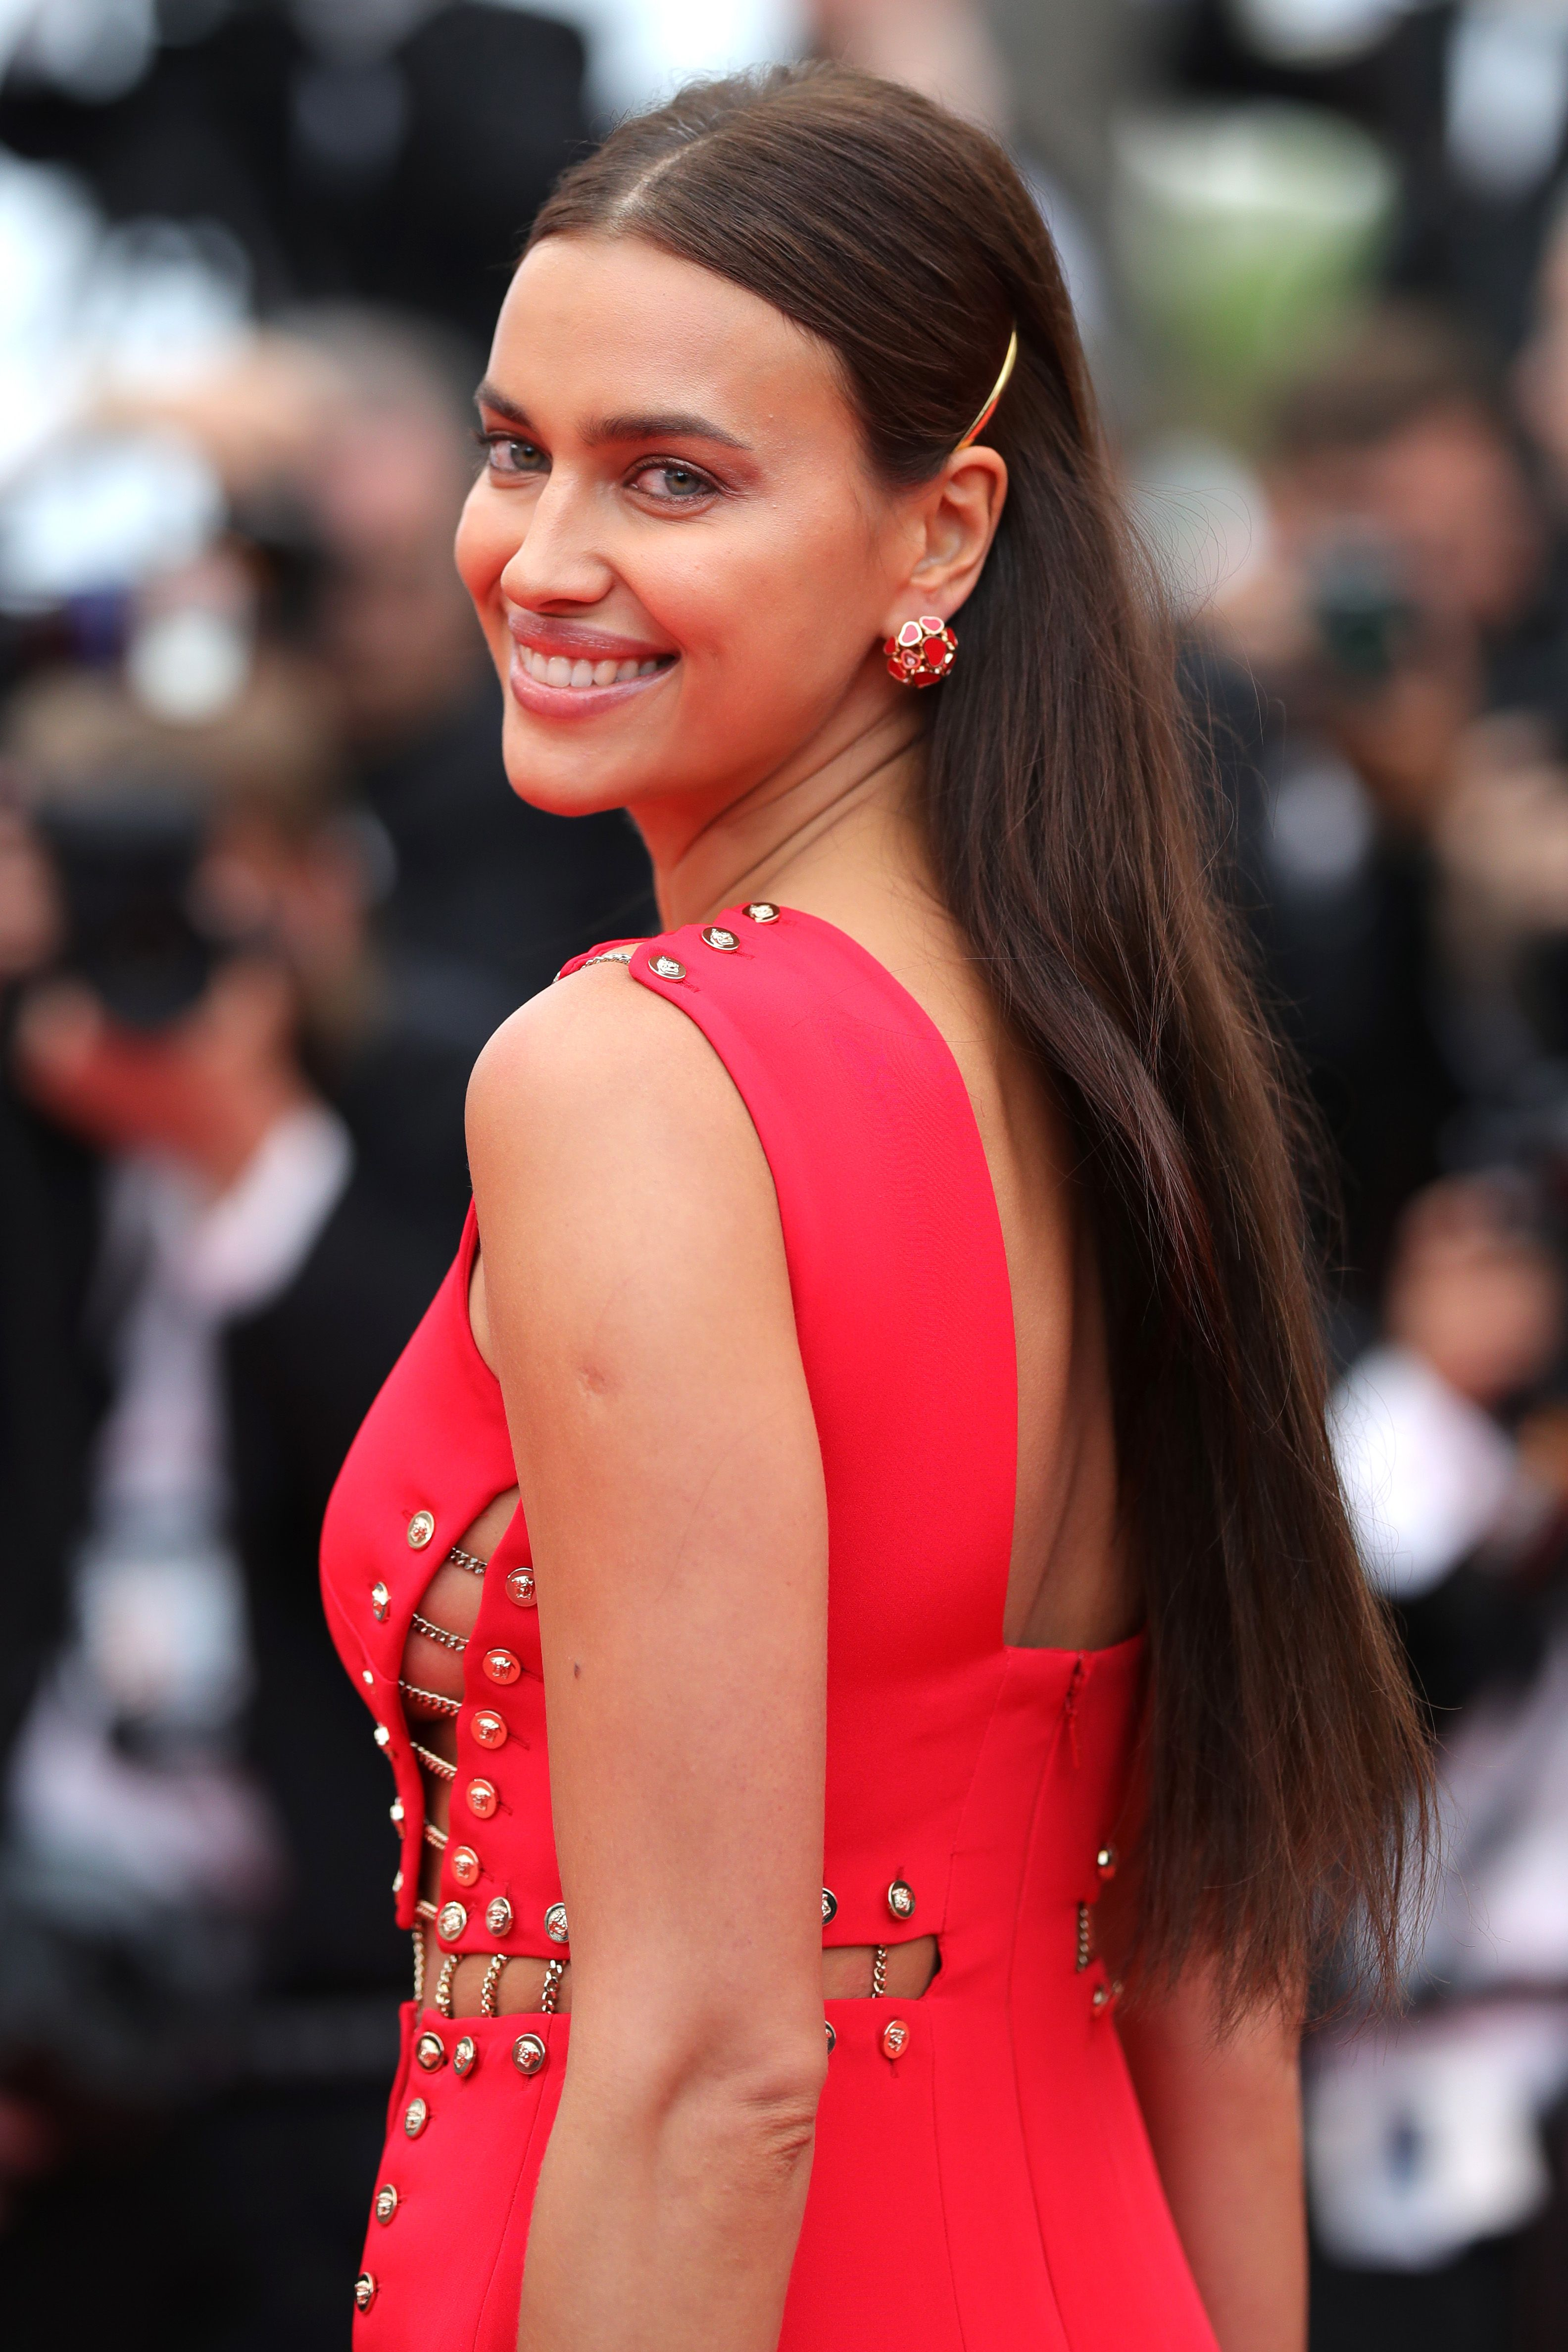 Irina Shayk Just Weighed in On *Those* Lip Injection Rumors